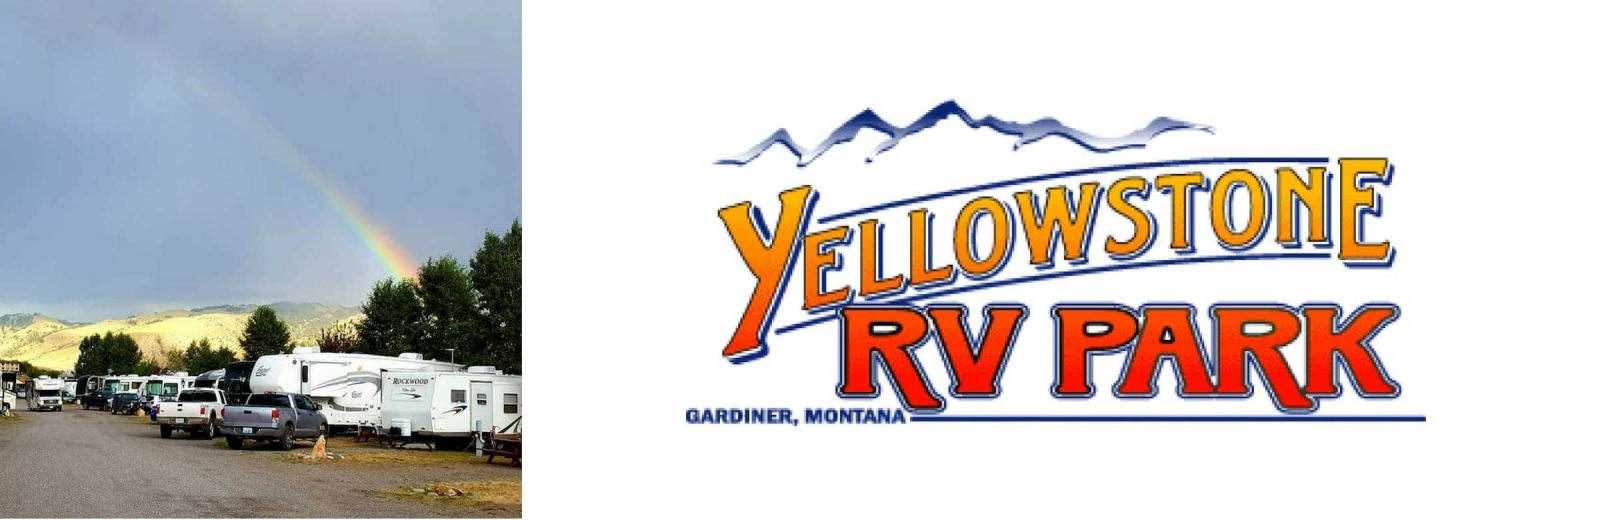 Yellowstone RV Park & Campground